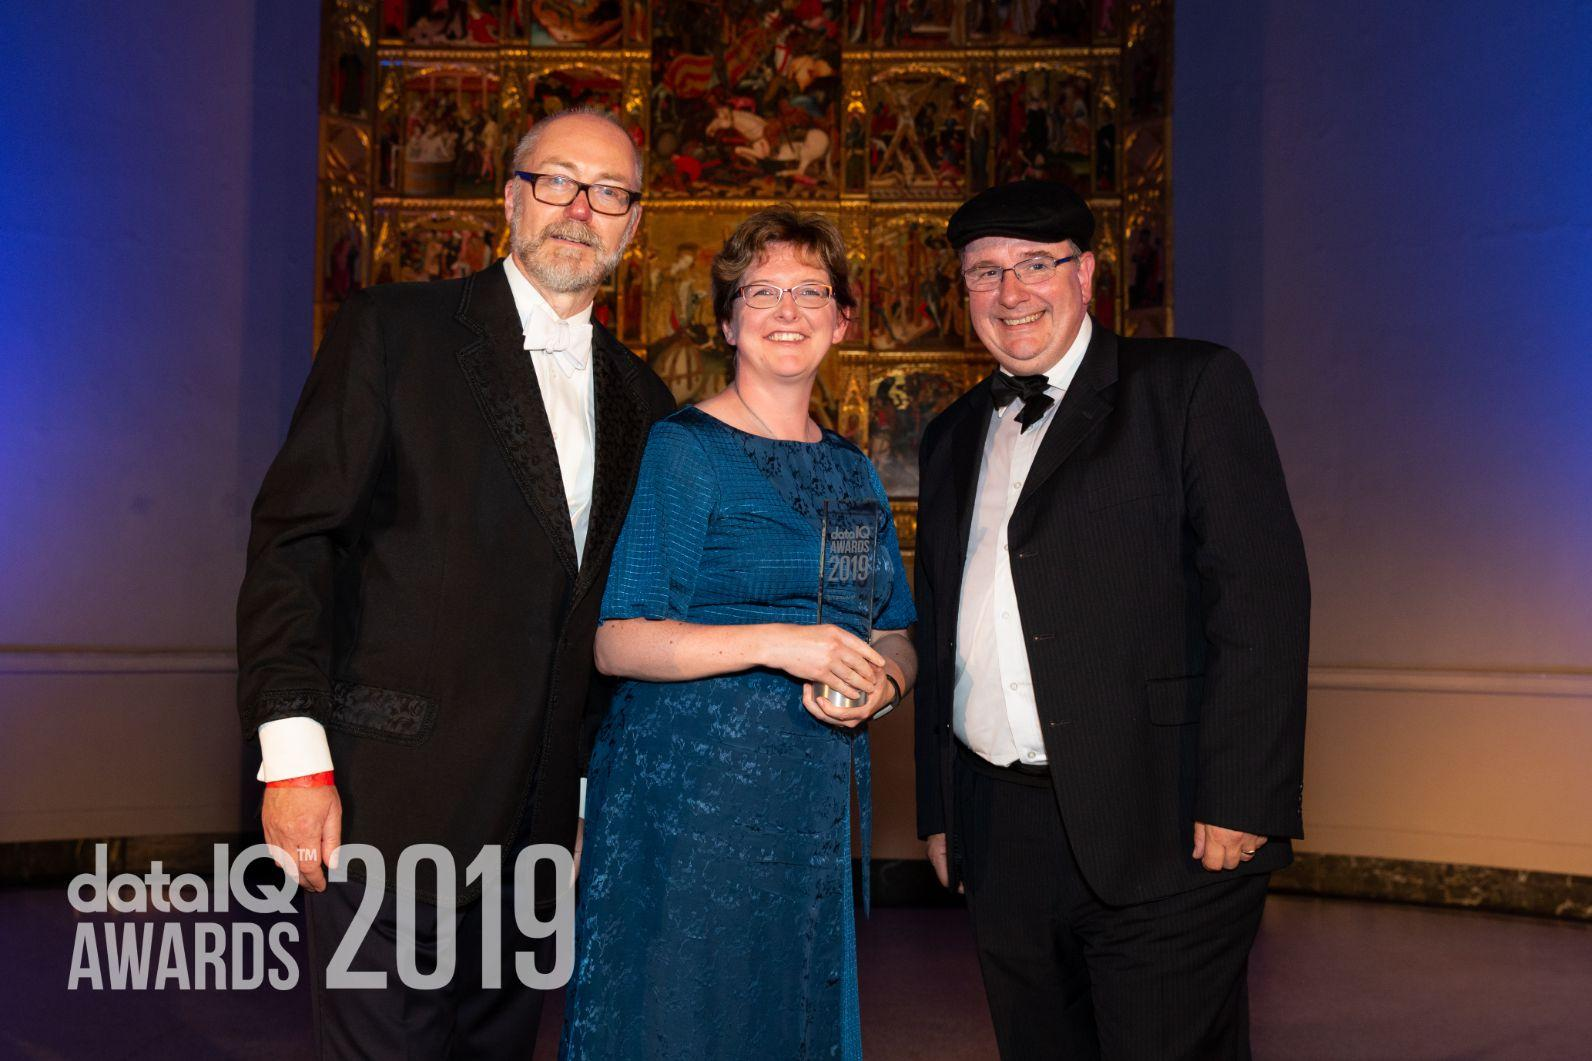 Awards 2019 Image 74